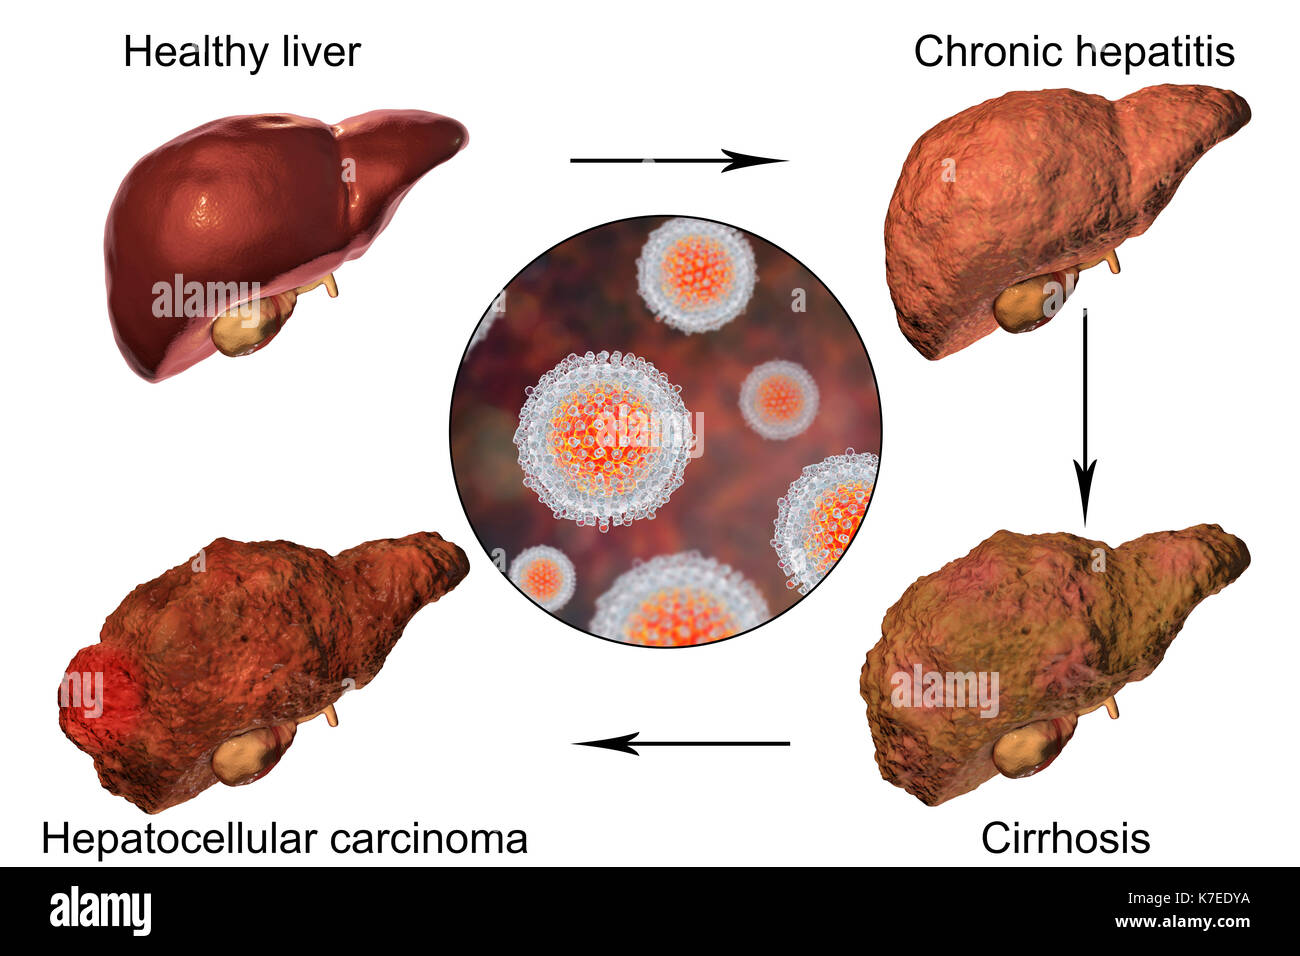 liver disease hepatitis c essay Hepatitis research papers report that the disease can come in the forms of hepatitis a, hepatitis b or hepatitis c get research paper relief at paper masters.